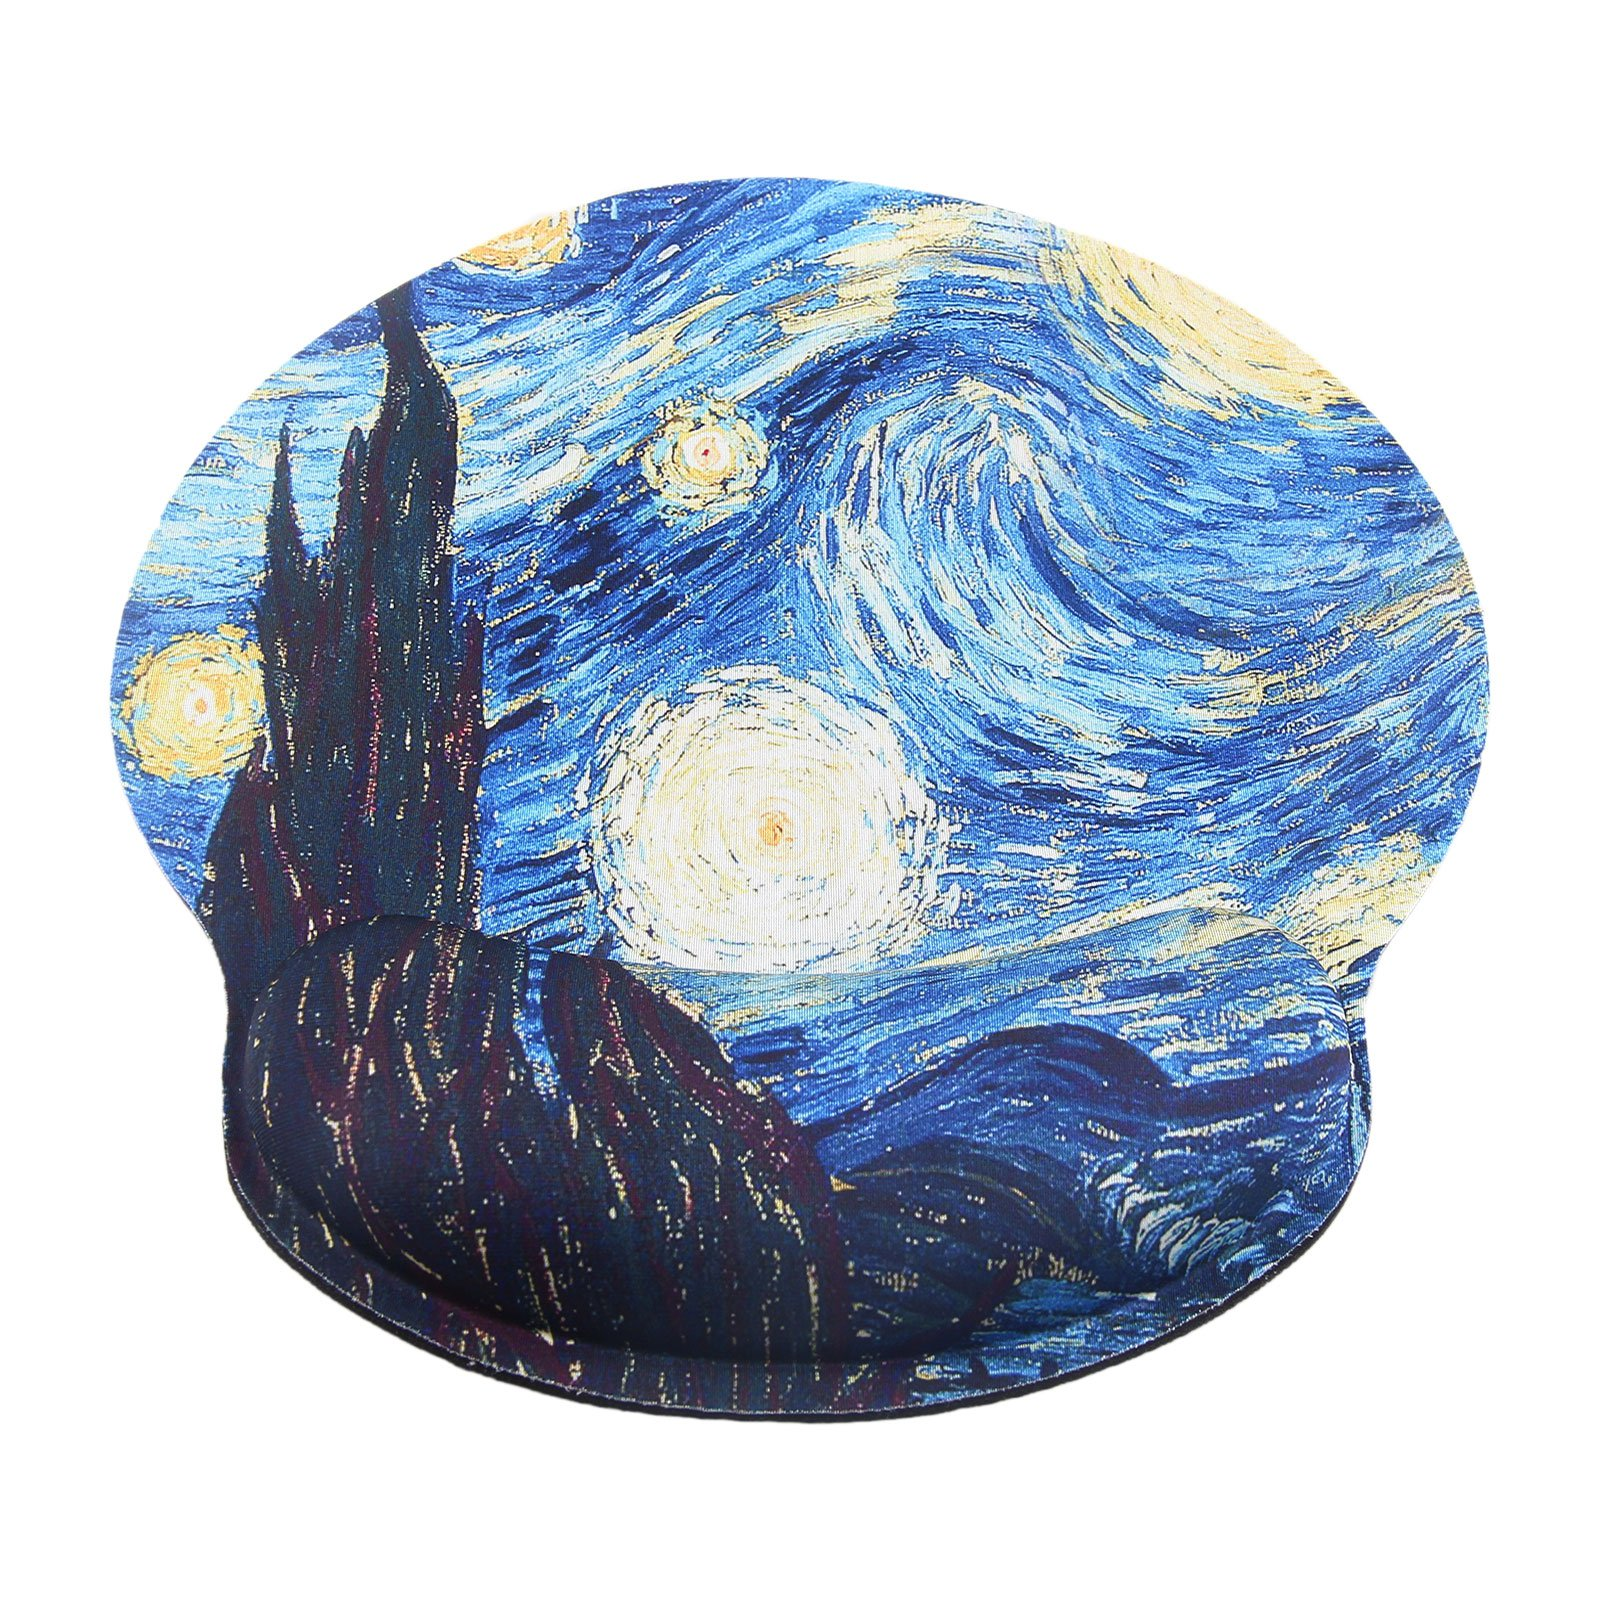 Mouse Pad for Computers Ergonomic Memory Foam Nonslip Van Gogh Wrist Support-Lightweight Rest Mousepad for Office,Gaming,Computer, Laptop & Mac,Pain Relief,at Home Or Work (Starry Night)